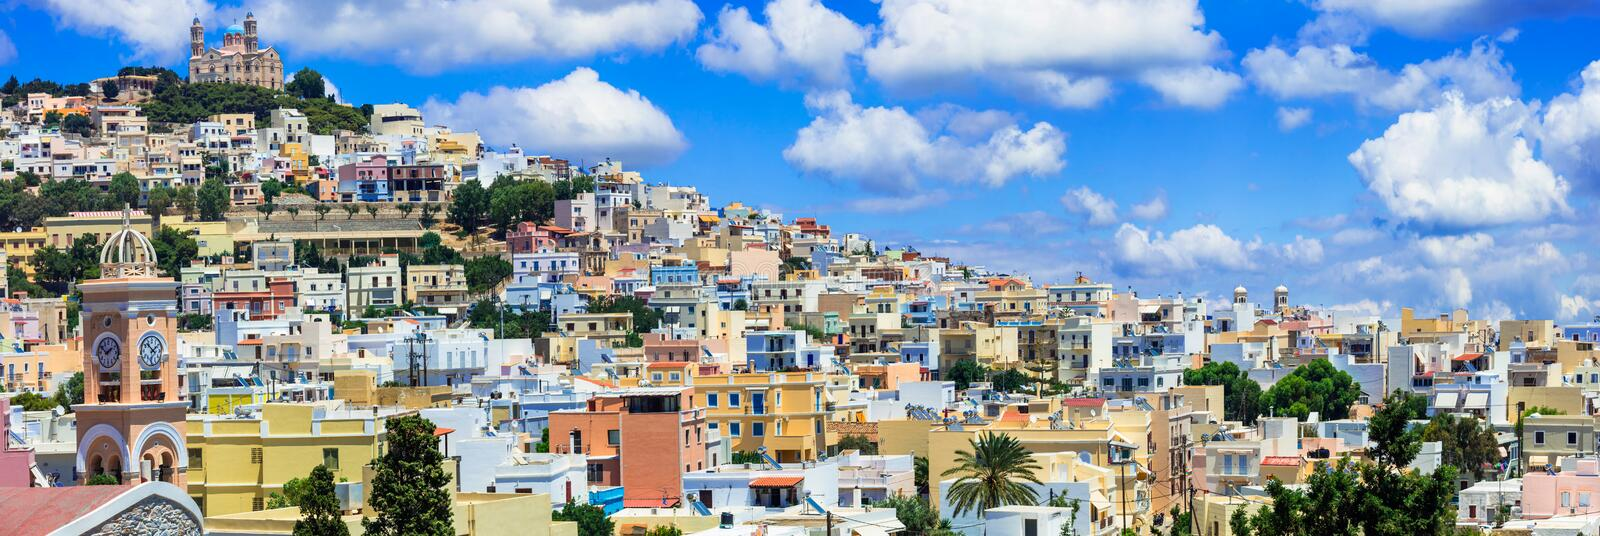 Traditional colorful houses,Syros island,Greece. royalty free stock photography